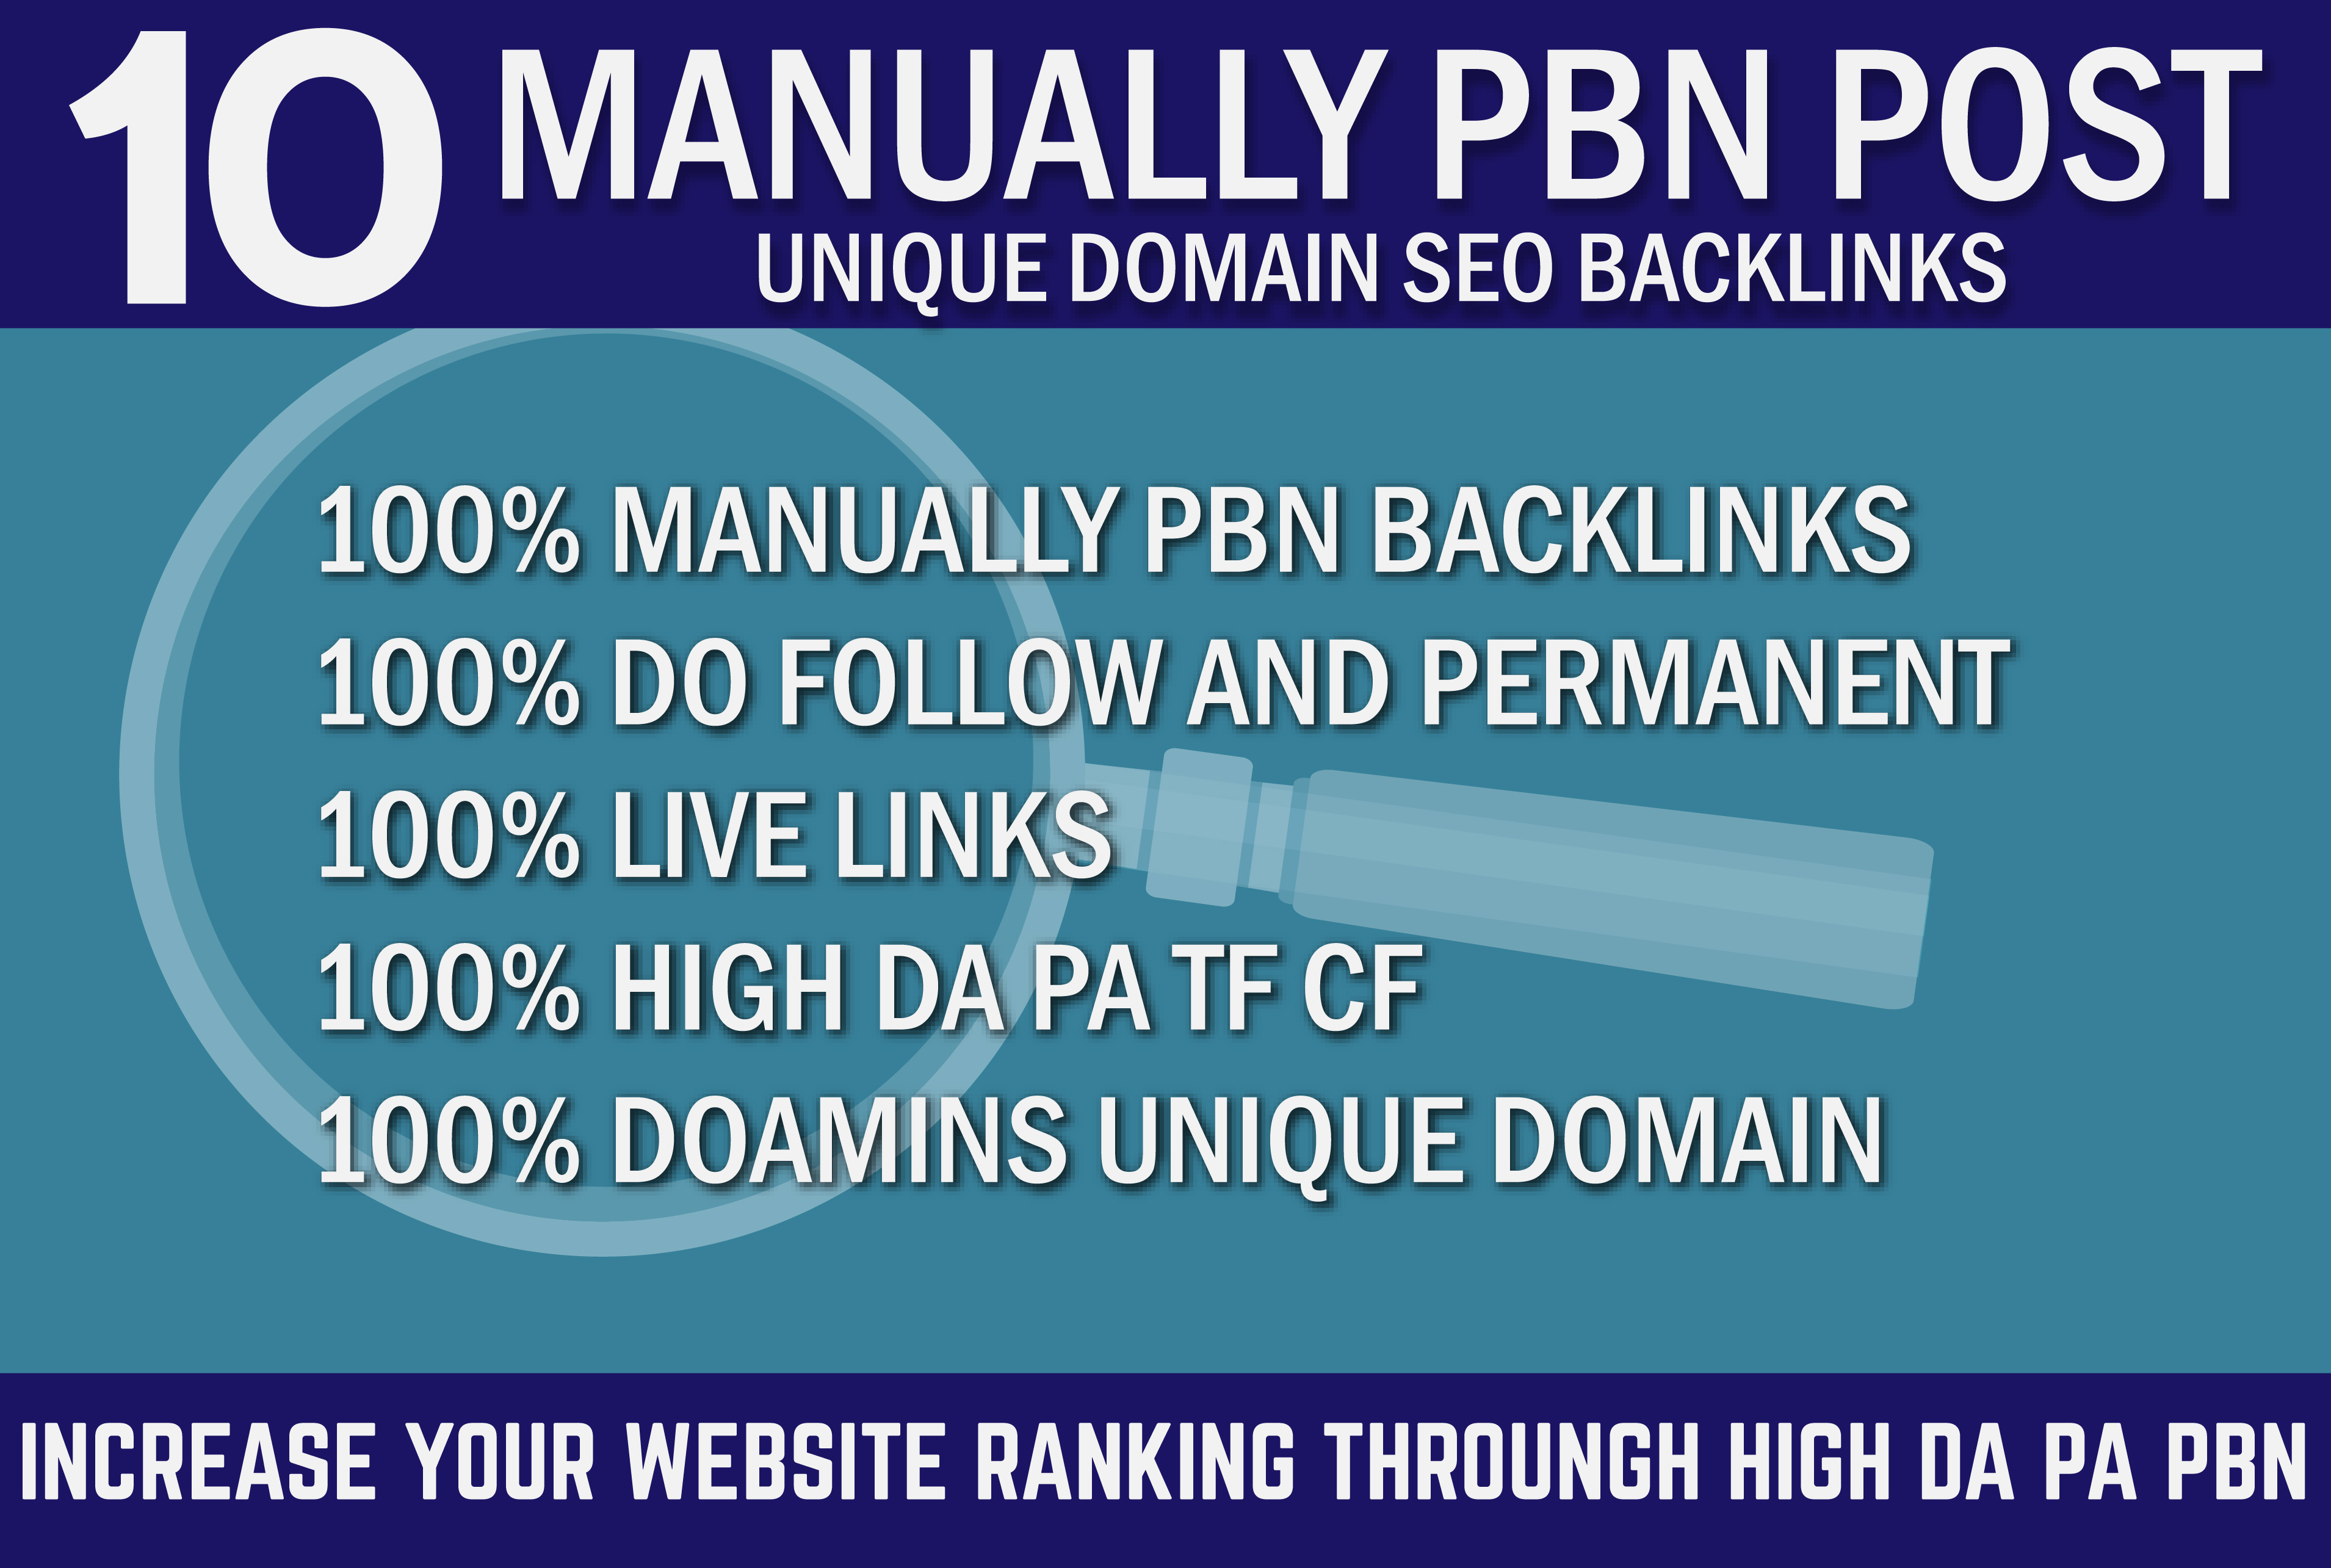 10 Manually PBN Post On Unique Domain High DA PA Quality SEO Backlinks